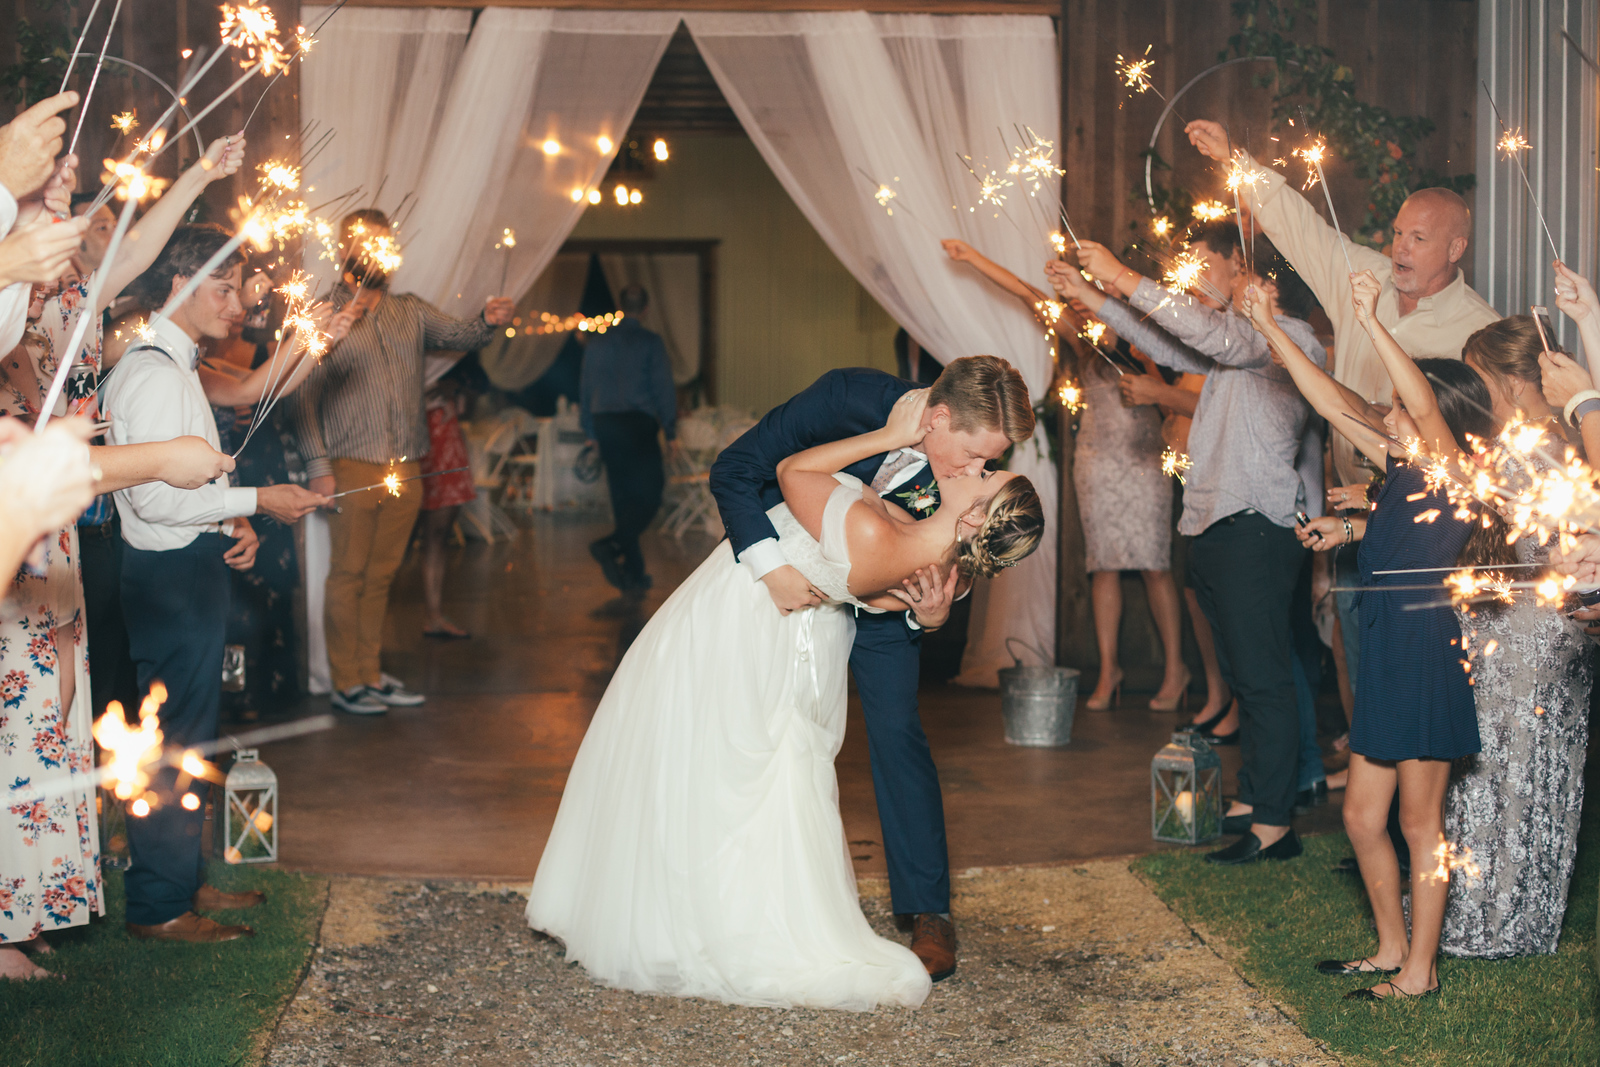 newlywed couple kissing as the groom dips the bride as they are surrounded by their wedding guests holding sparklers